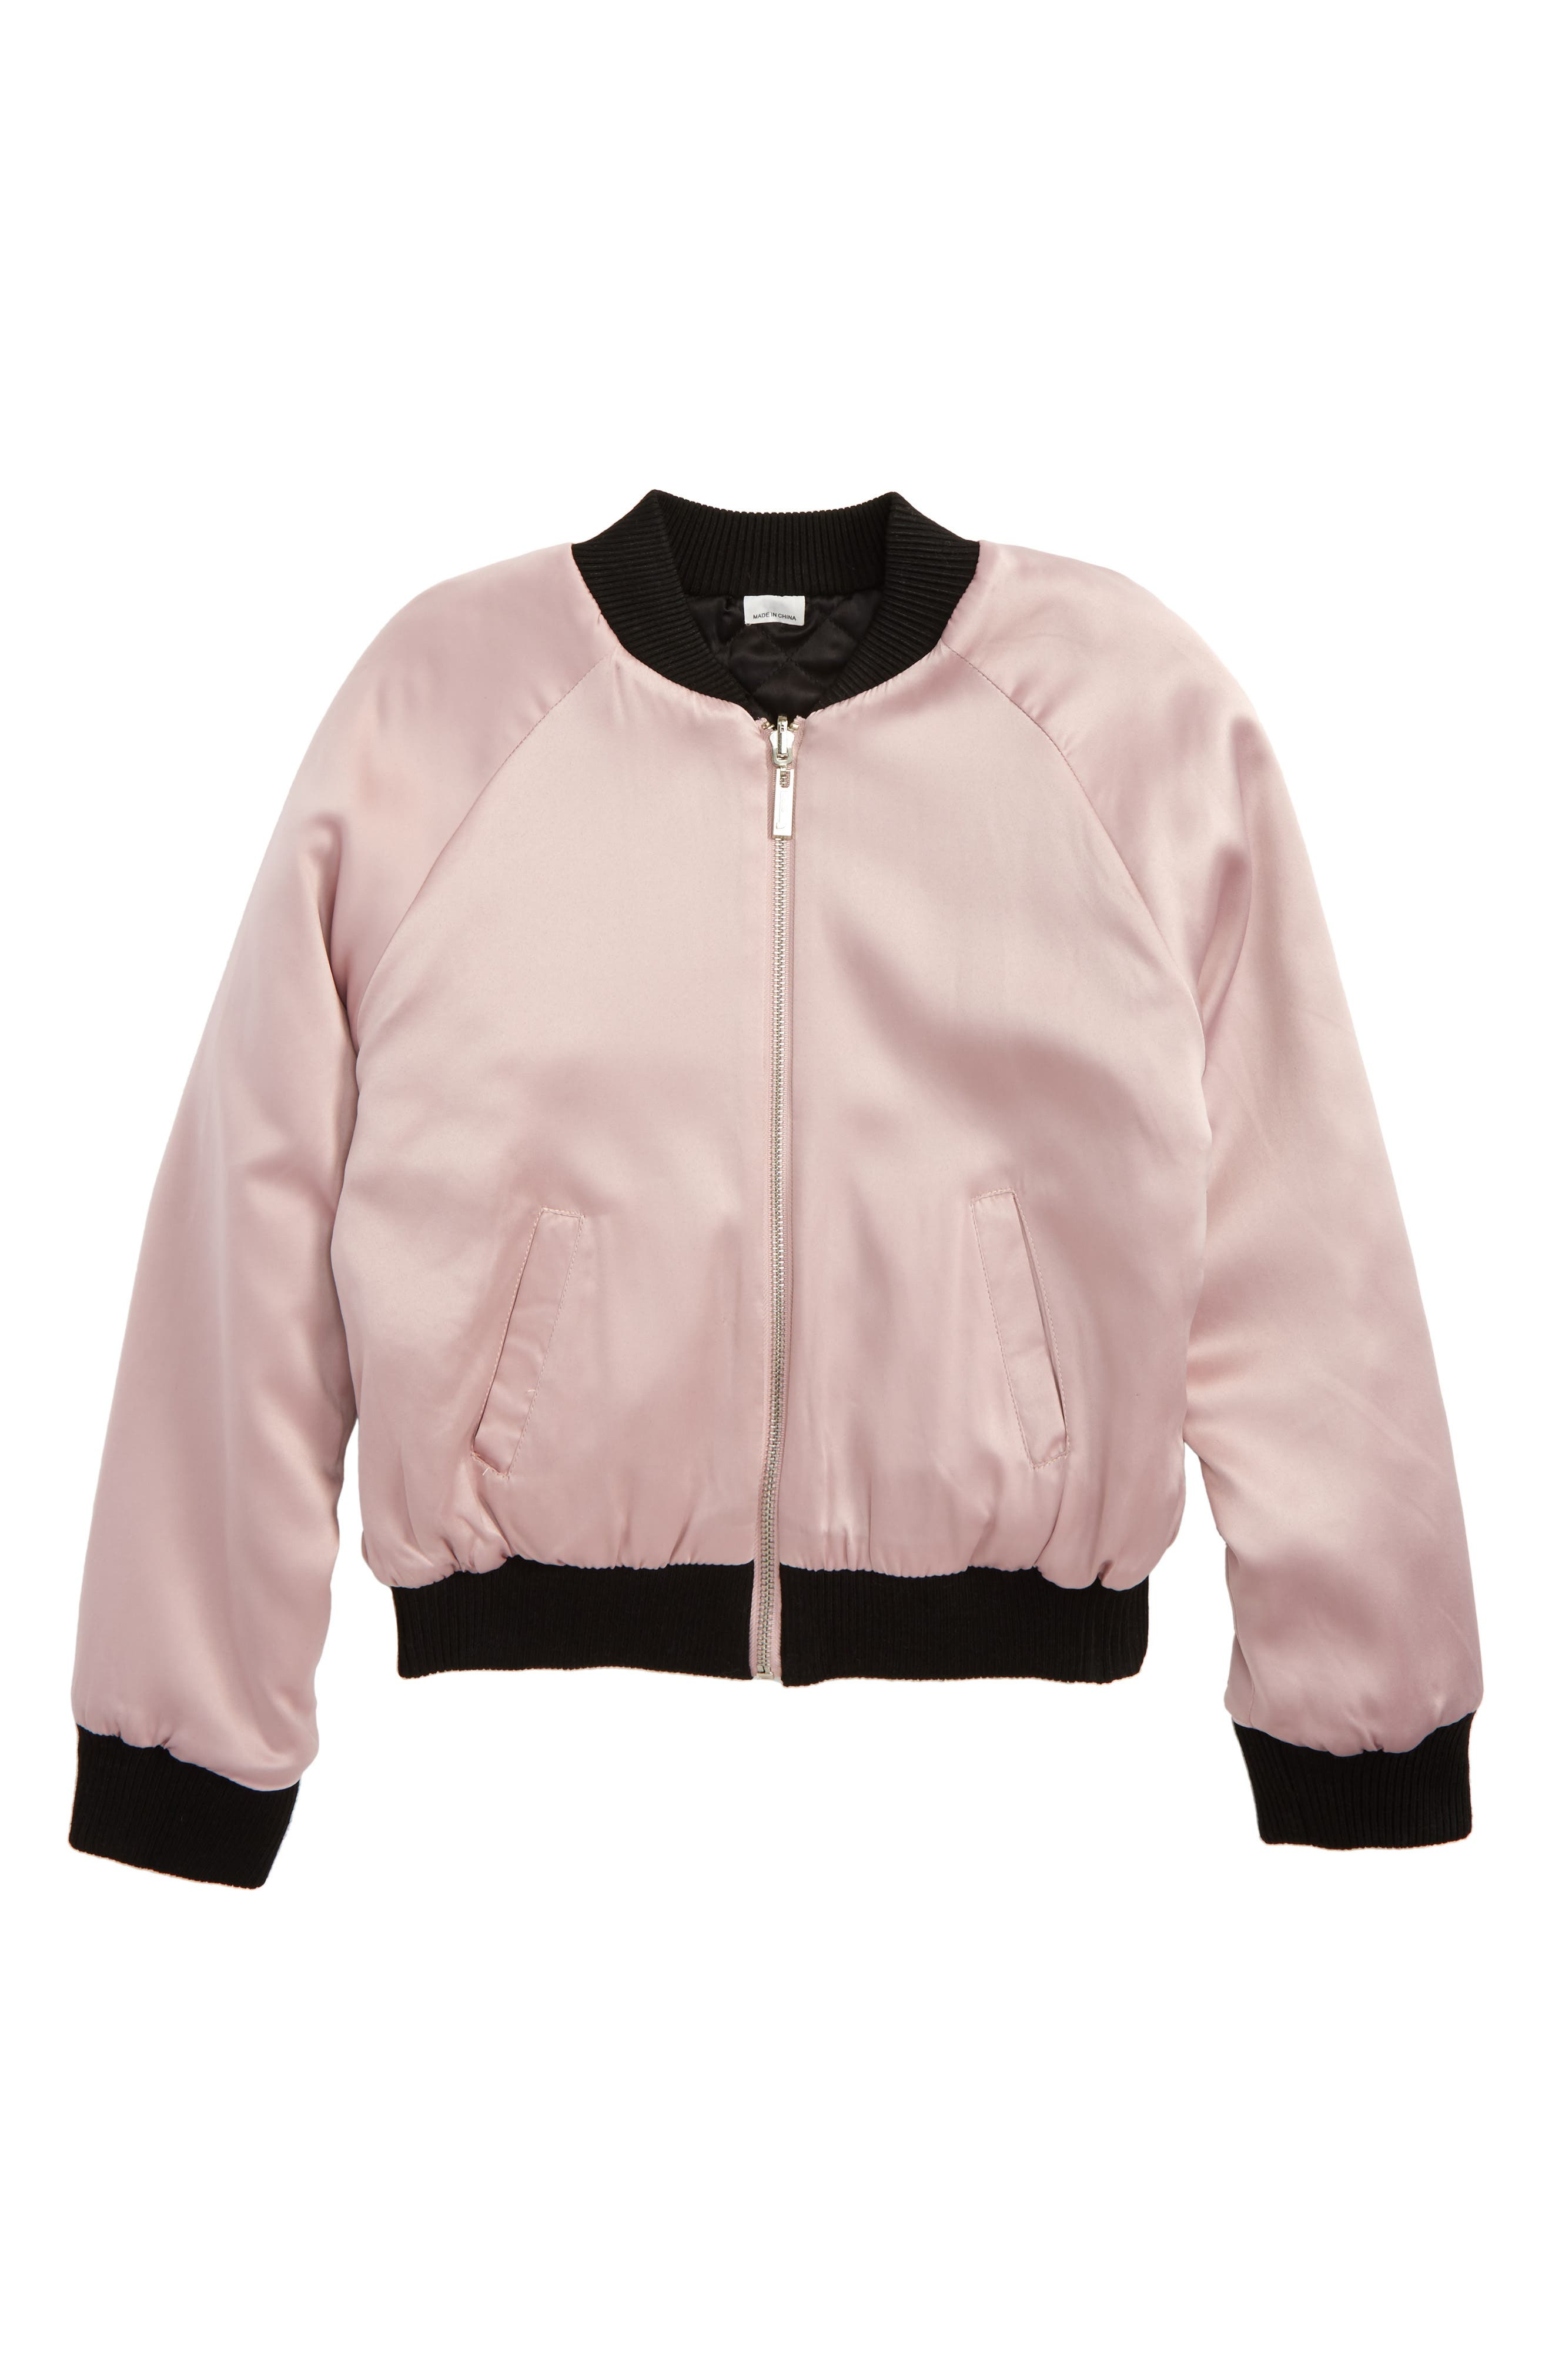 Embroidered Reversible Bomber Jacket,                             Main thumbnail 1, color,                             008